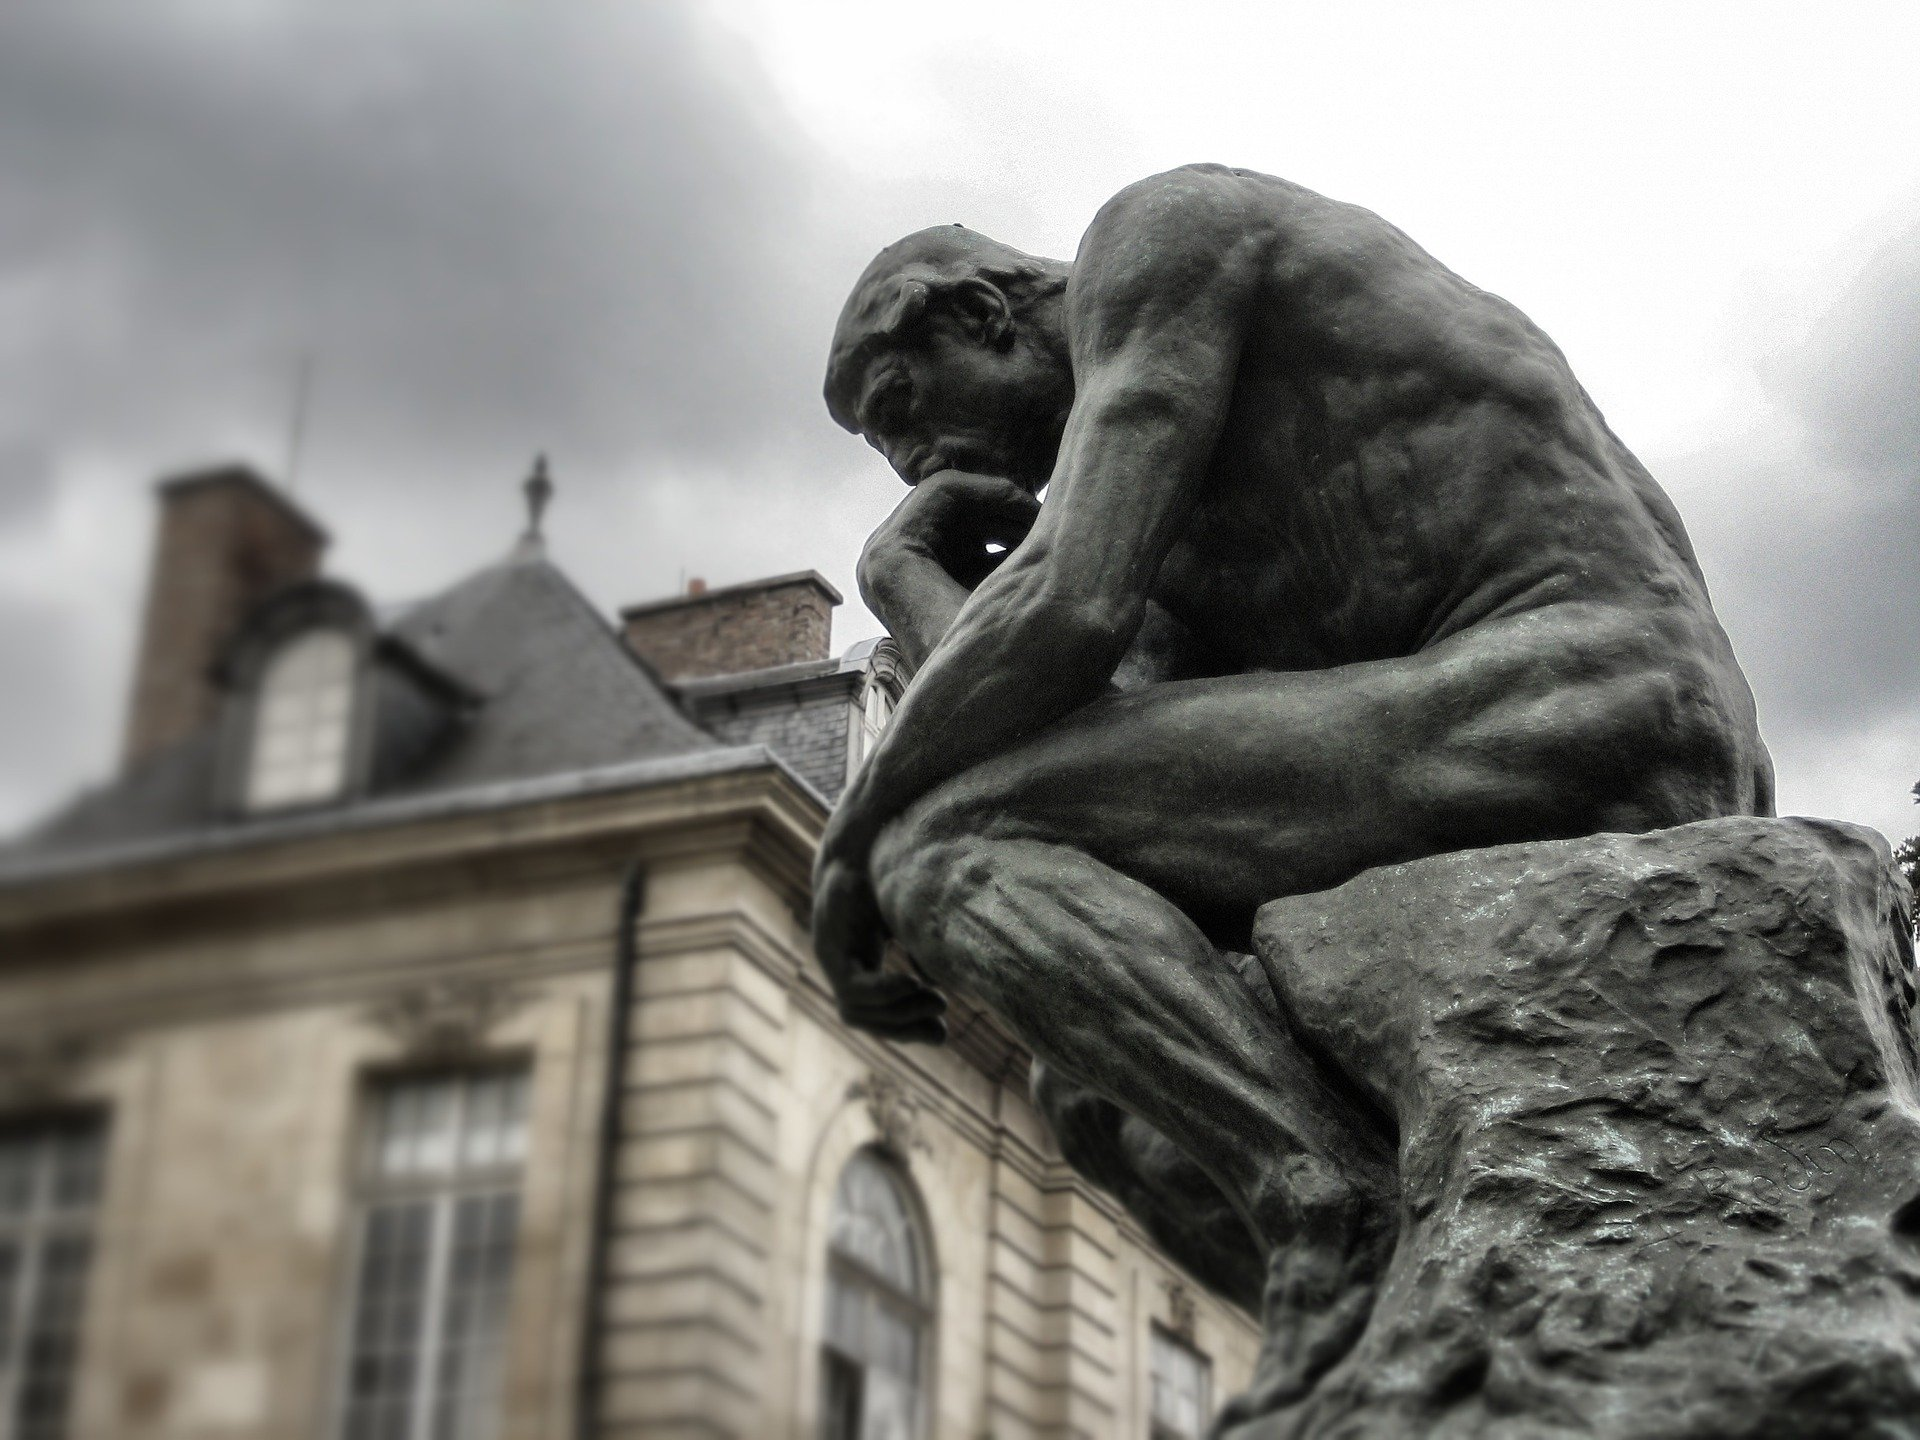 Picture of Rodin's the Thinker